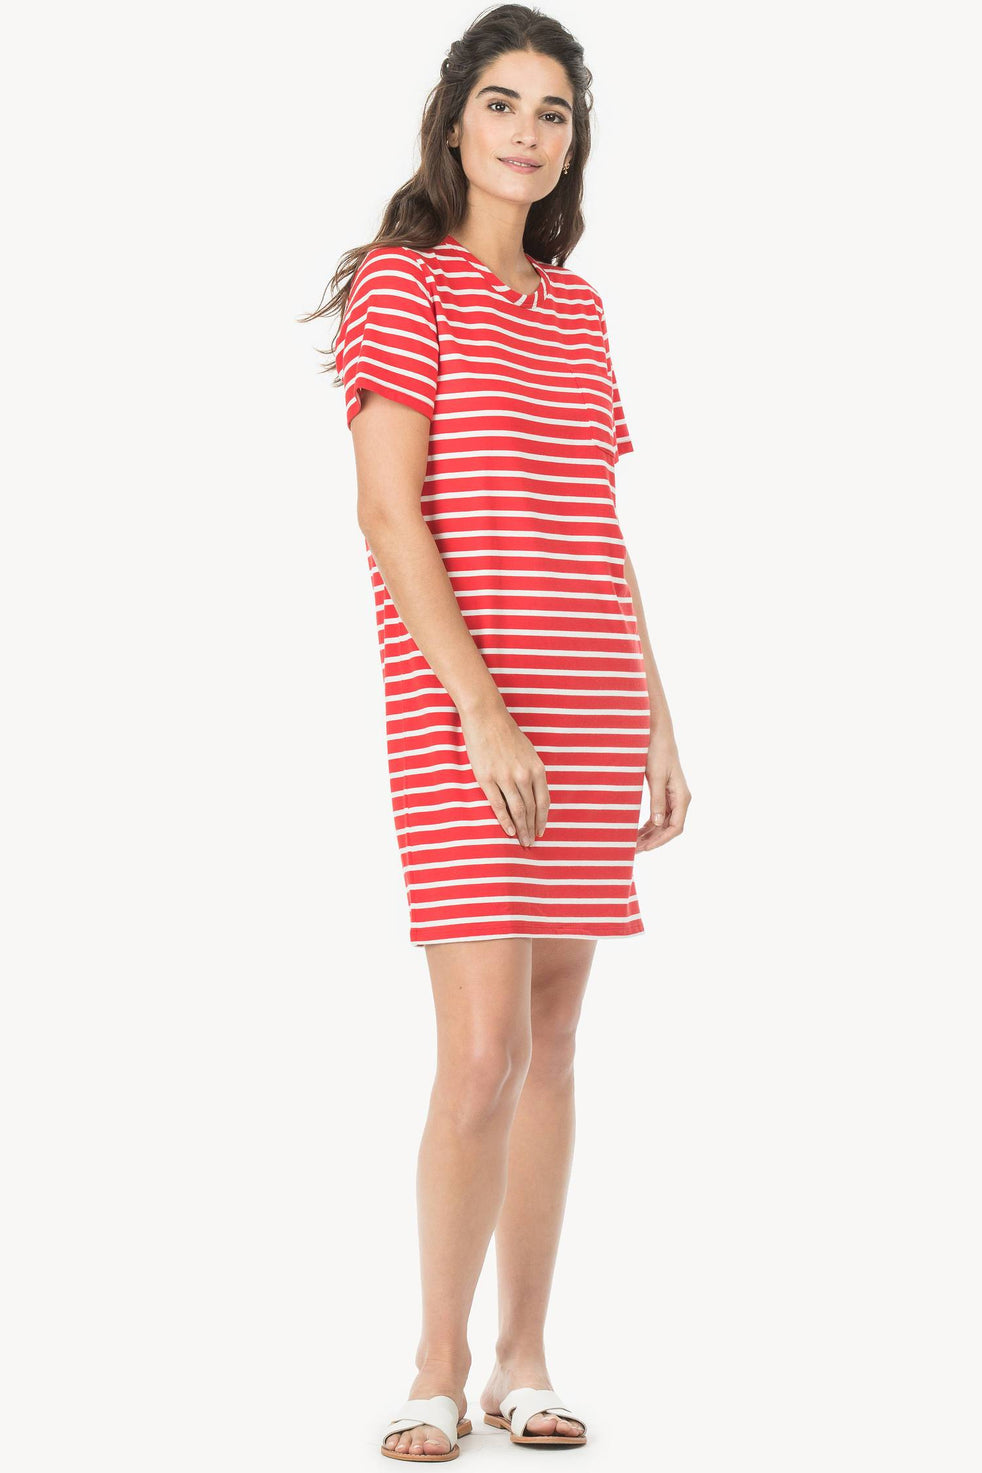 c51f6ce15d54a Stripes Collection - Top, Dresses & Sweaters | Women's Striped Apparel